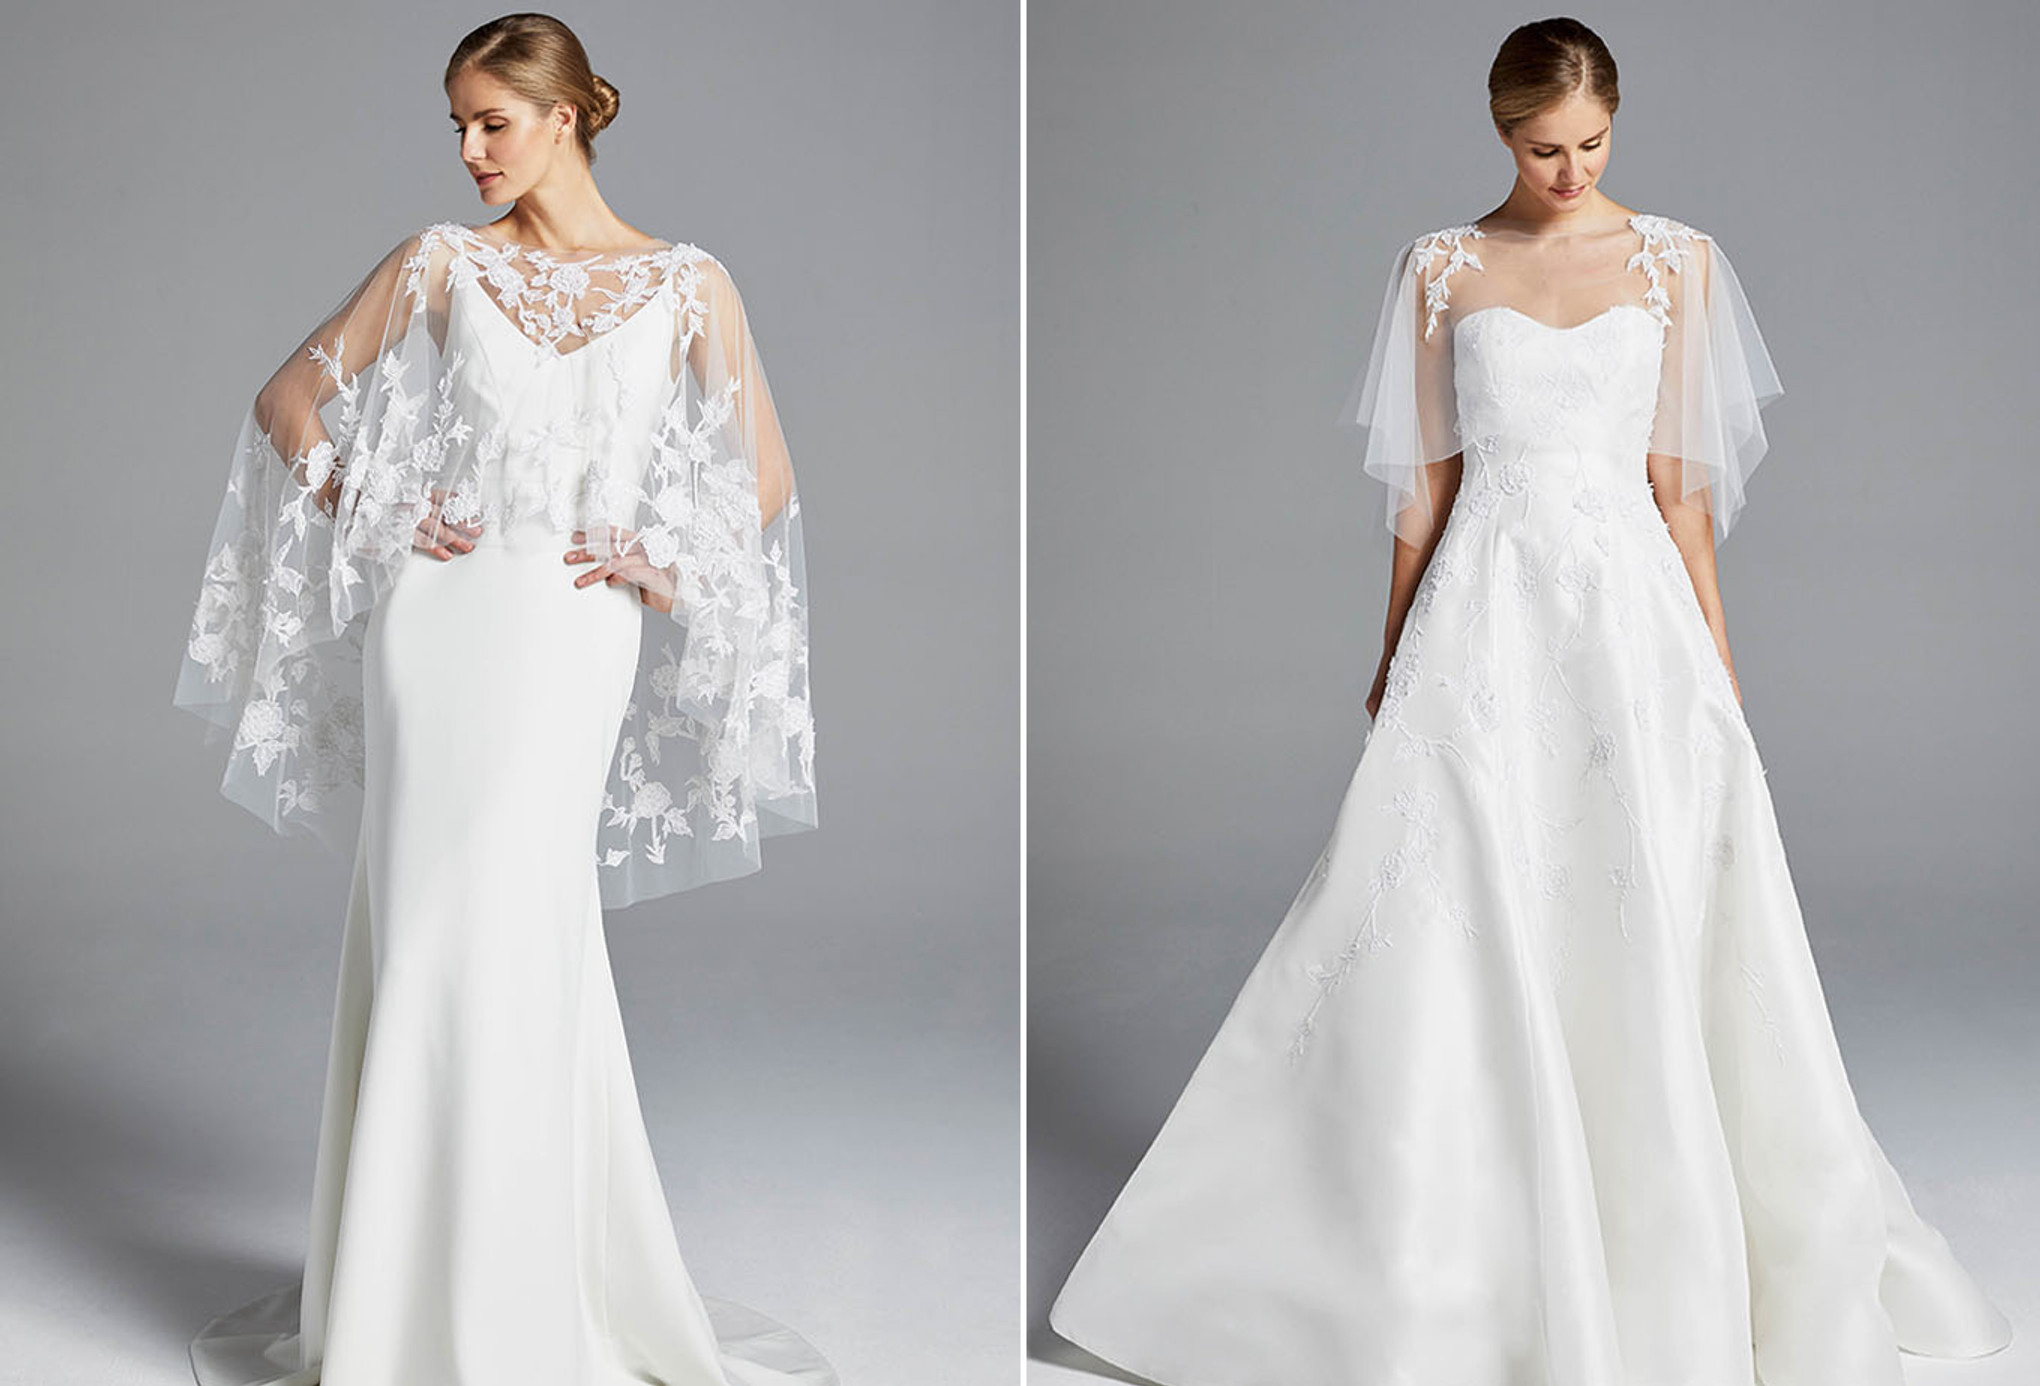 The Latest Wedding Dress Trends From Spring 2019 Bridal Fashion